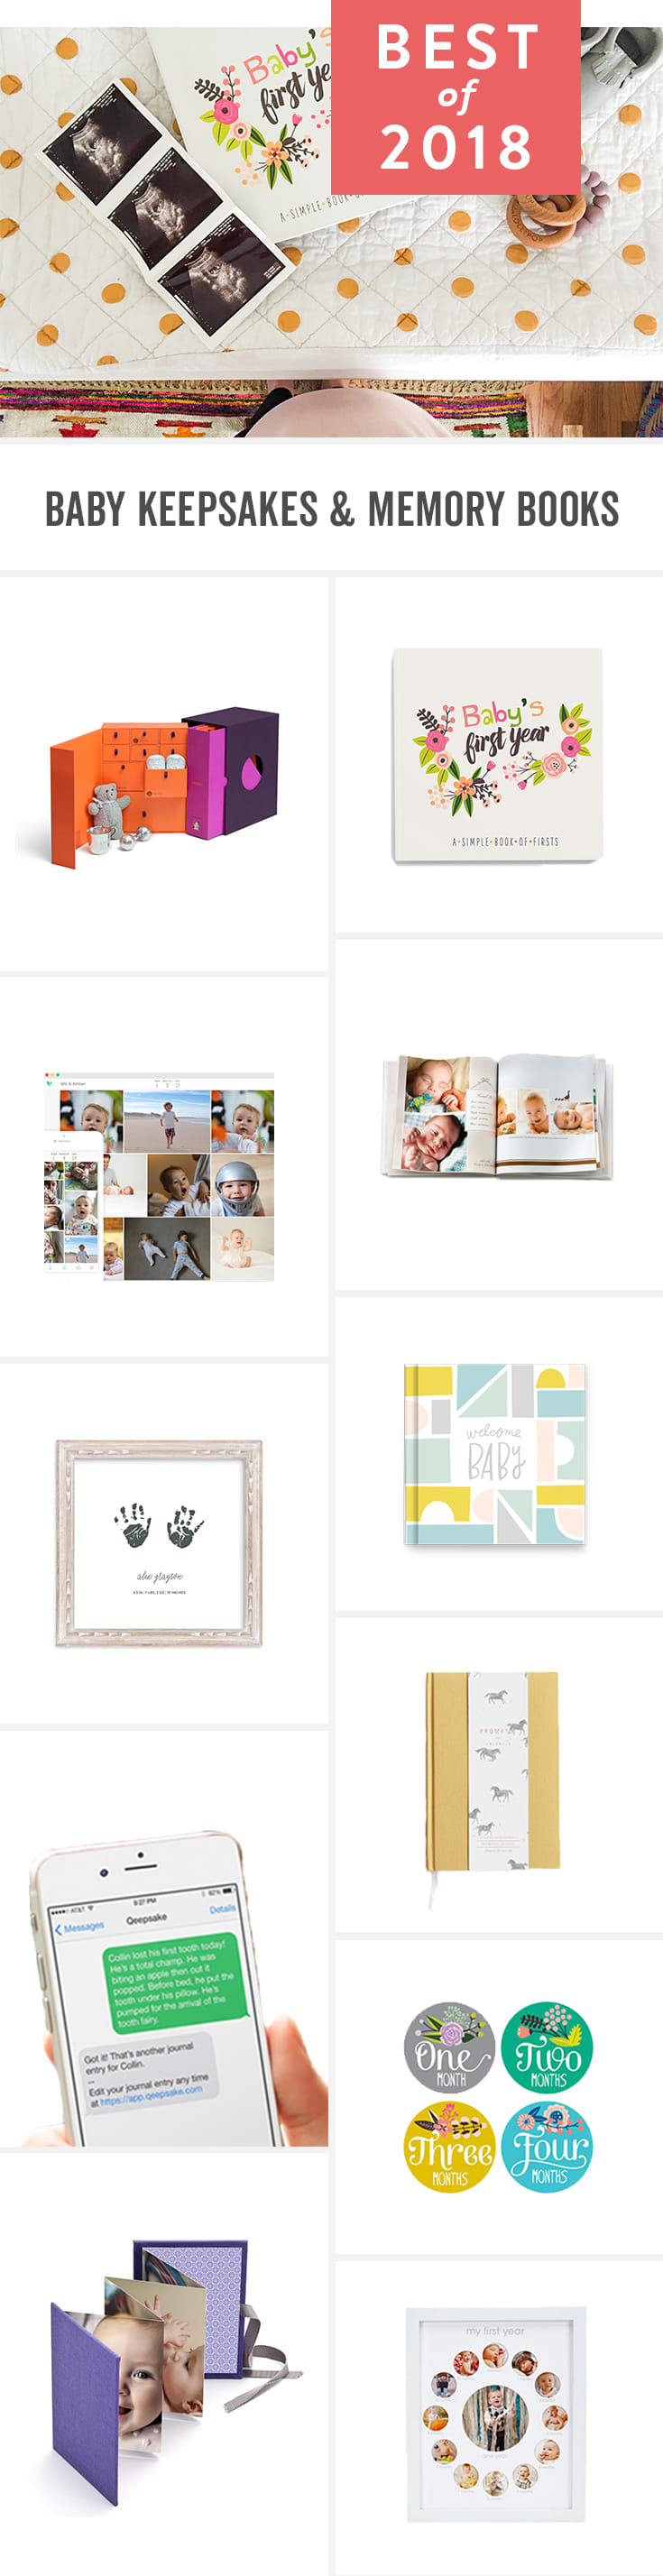 Childhood goes fast. Here are touching (and modern!) ways to record your little one's milestones. These personalized ideas and albums are an easy modern way to keep track of family photos and memories